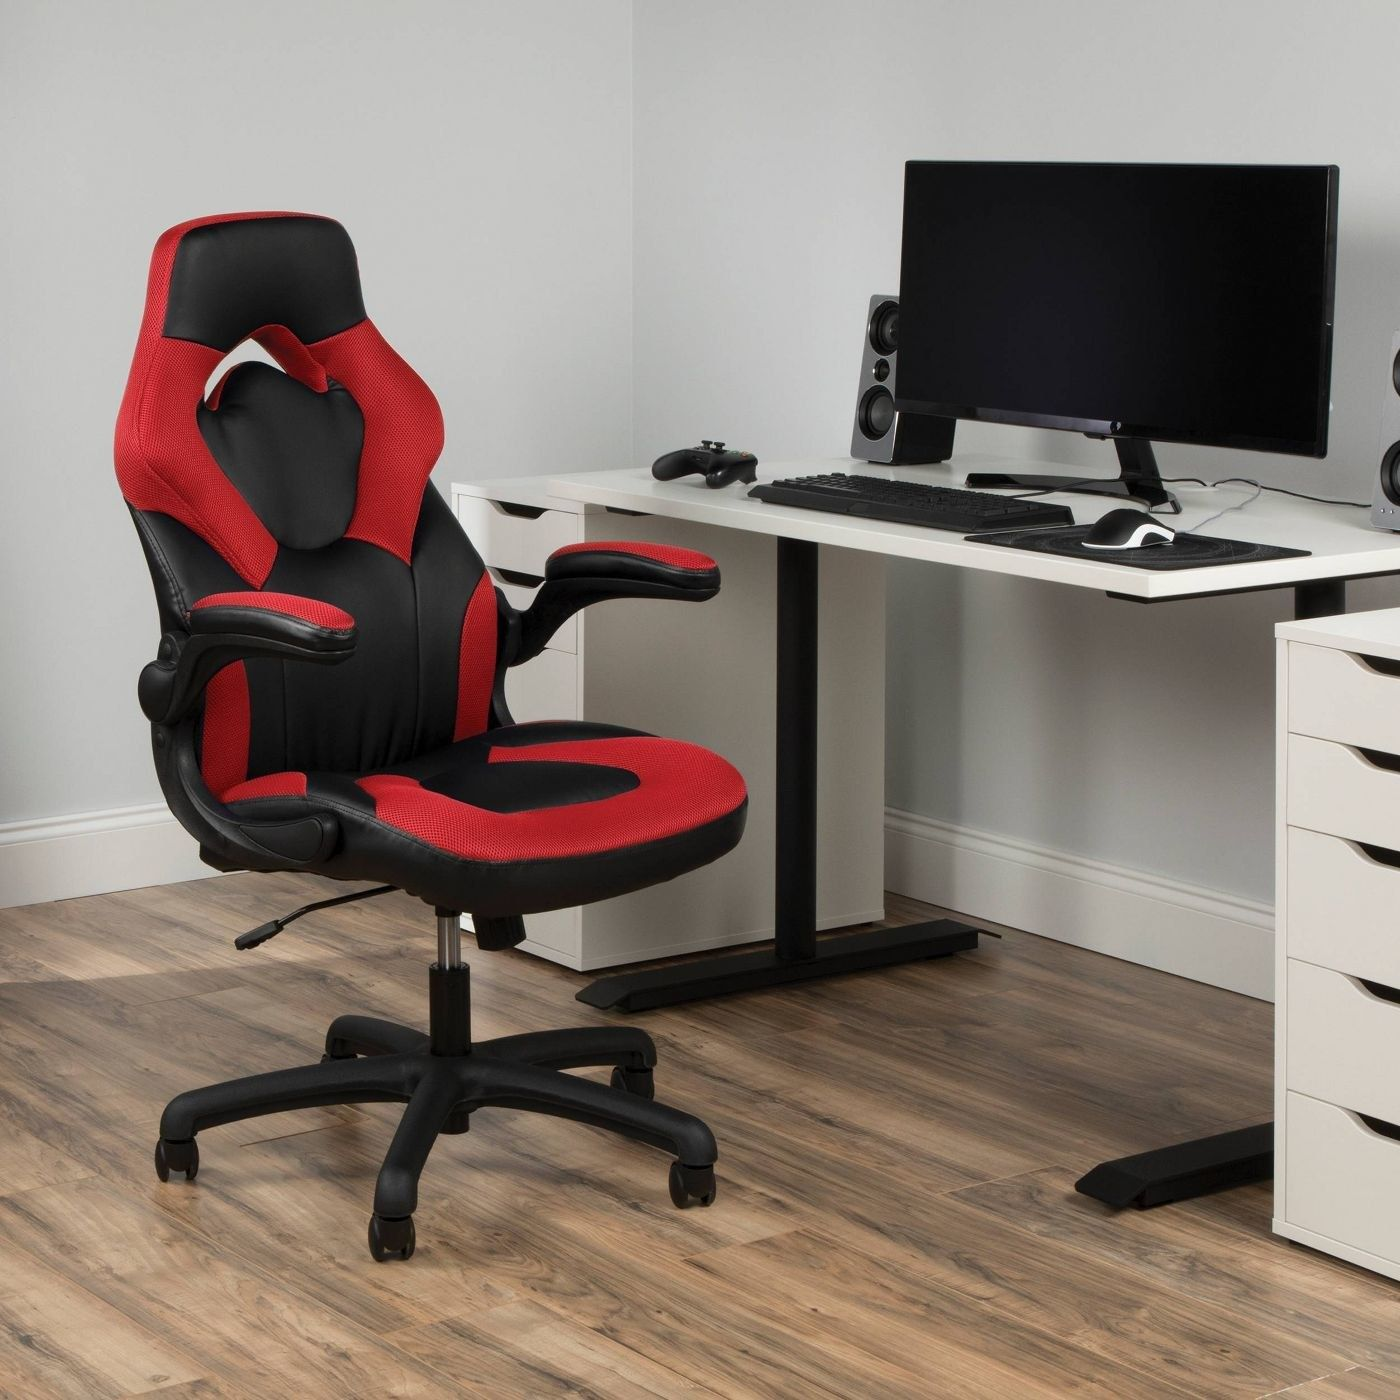 Or A Gaming Chair That Will Keep Your Toosh Comfortable After Hours Of Playing Call Of Duty Warzone Or Hours Of Zoom Meetings In 2020 Home Office Chairs Chair Furniture